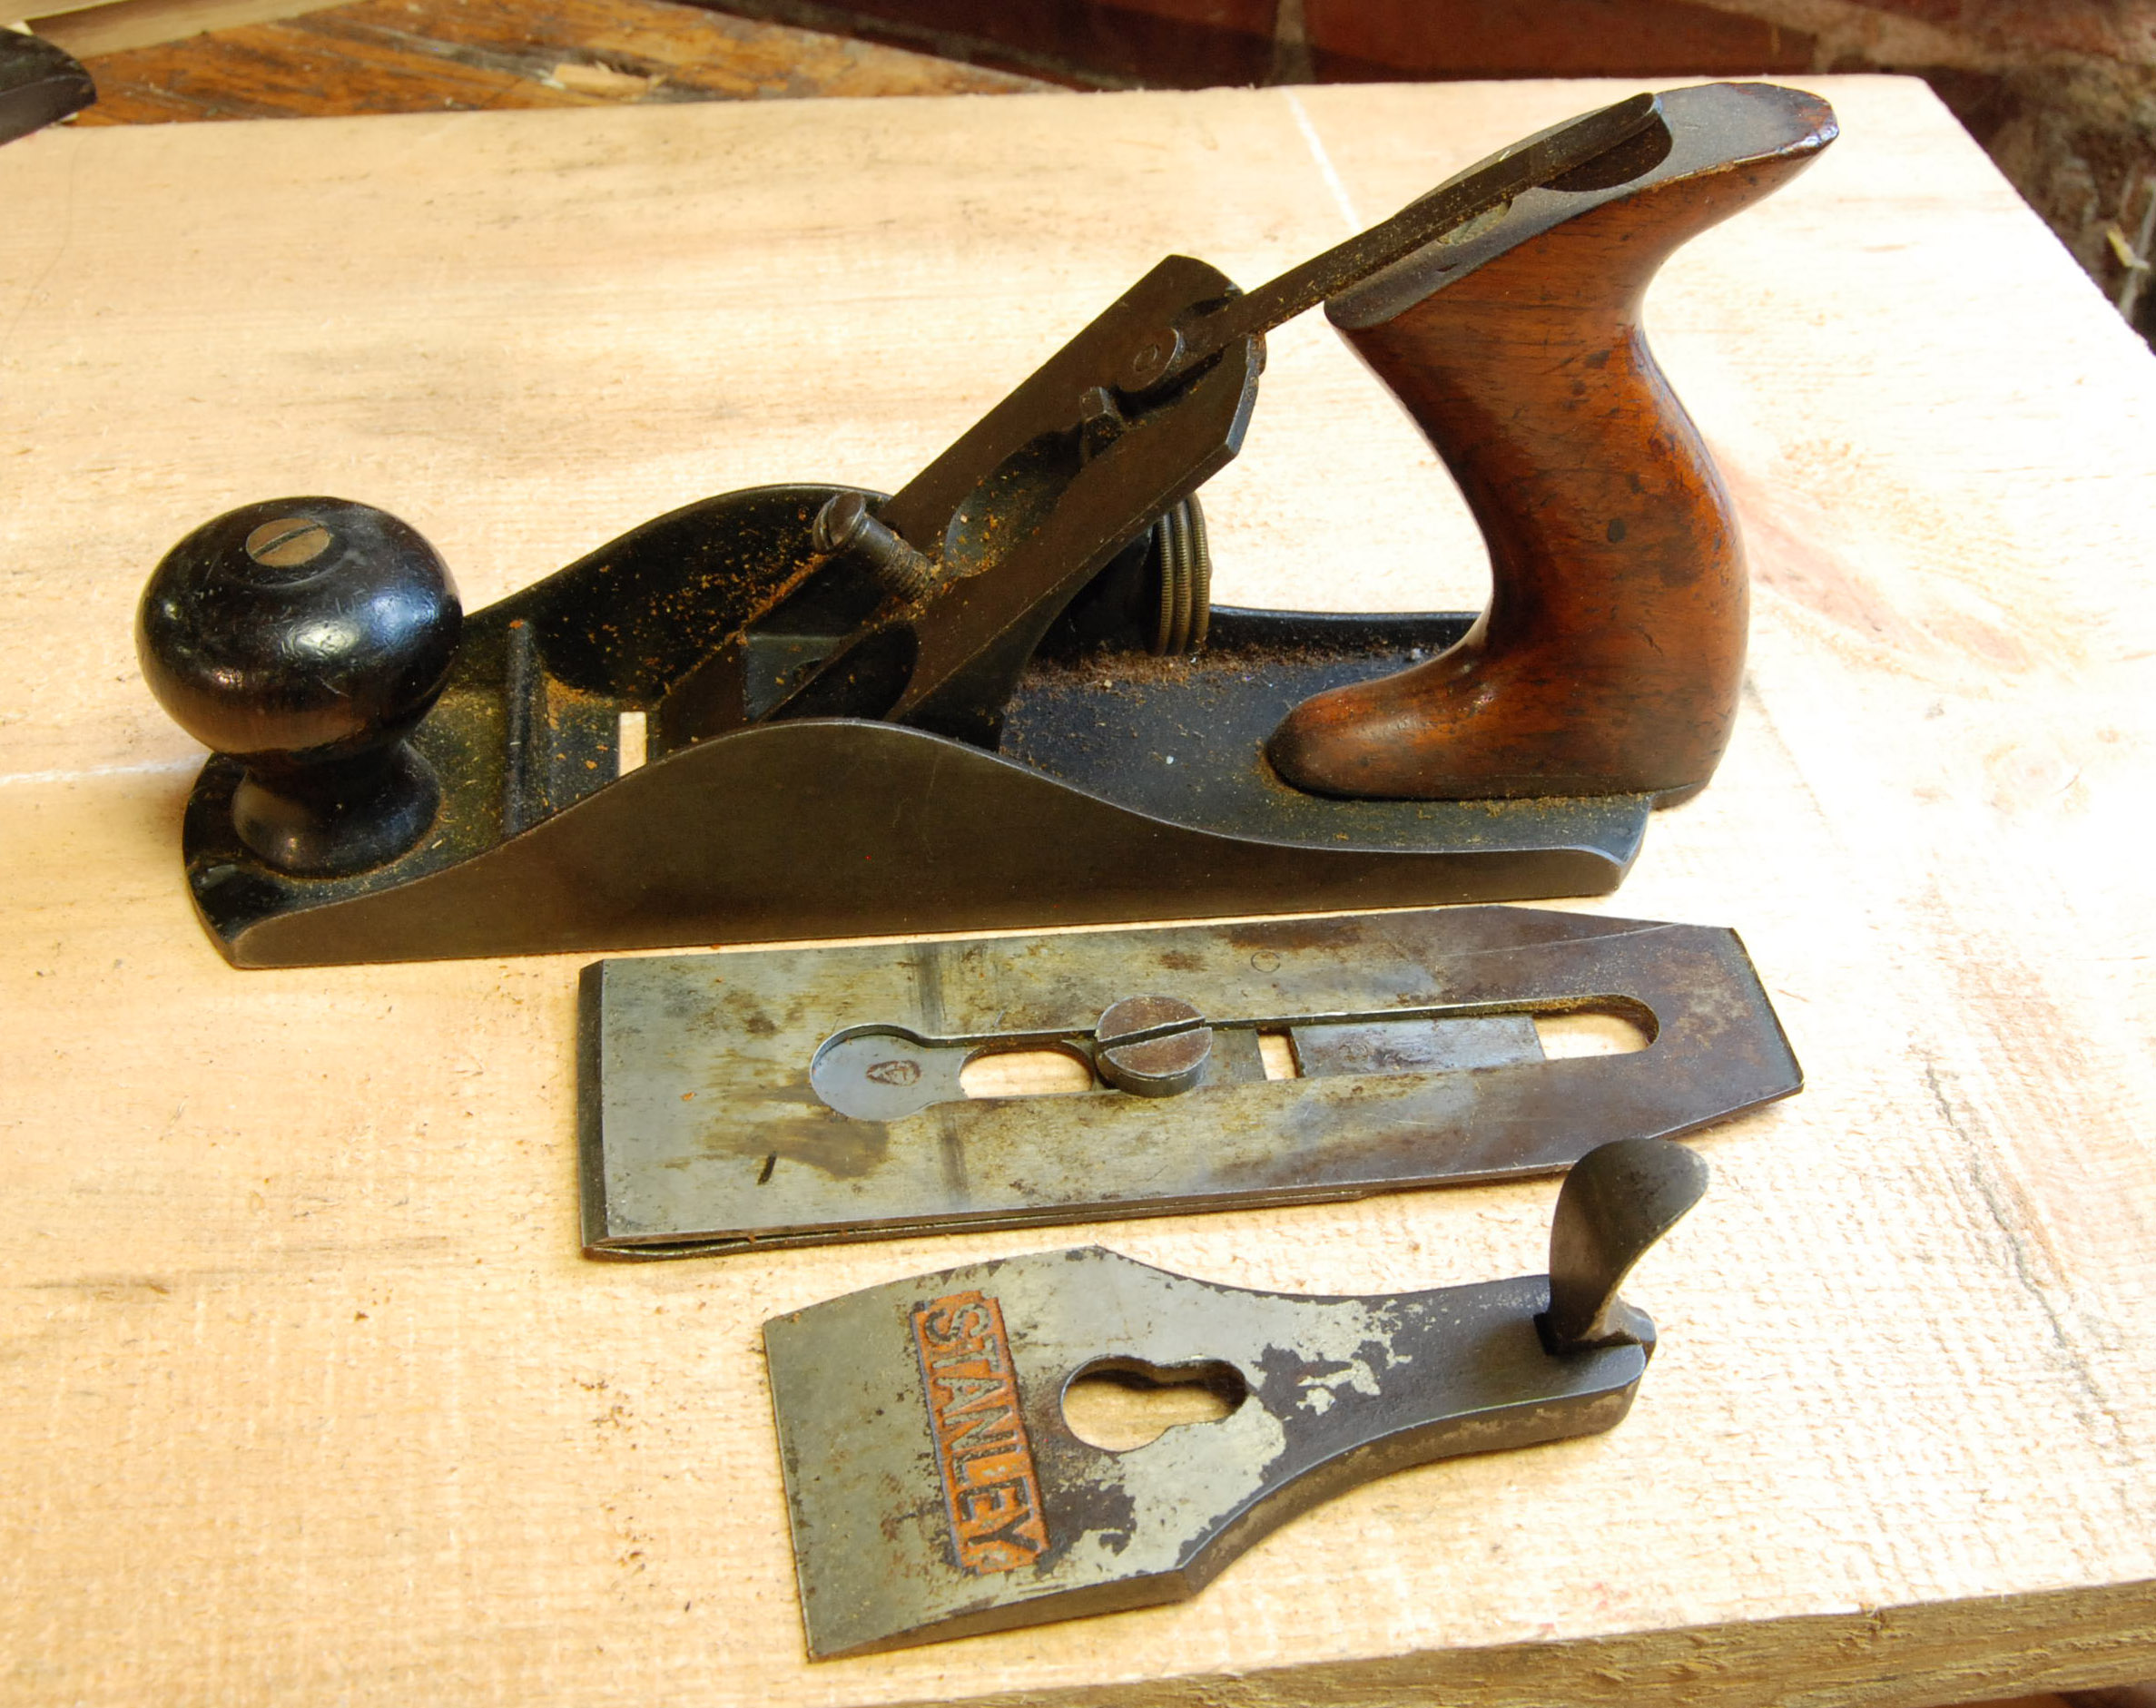 Stanley planes for sale south africa